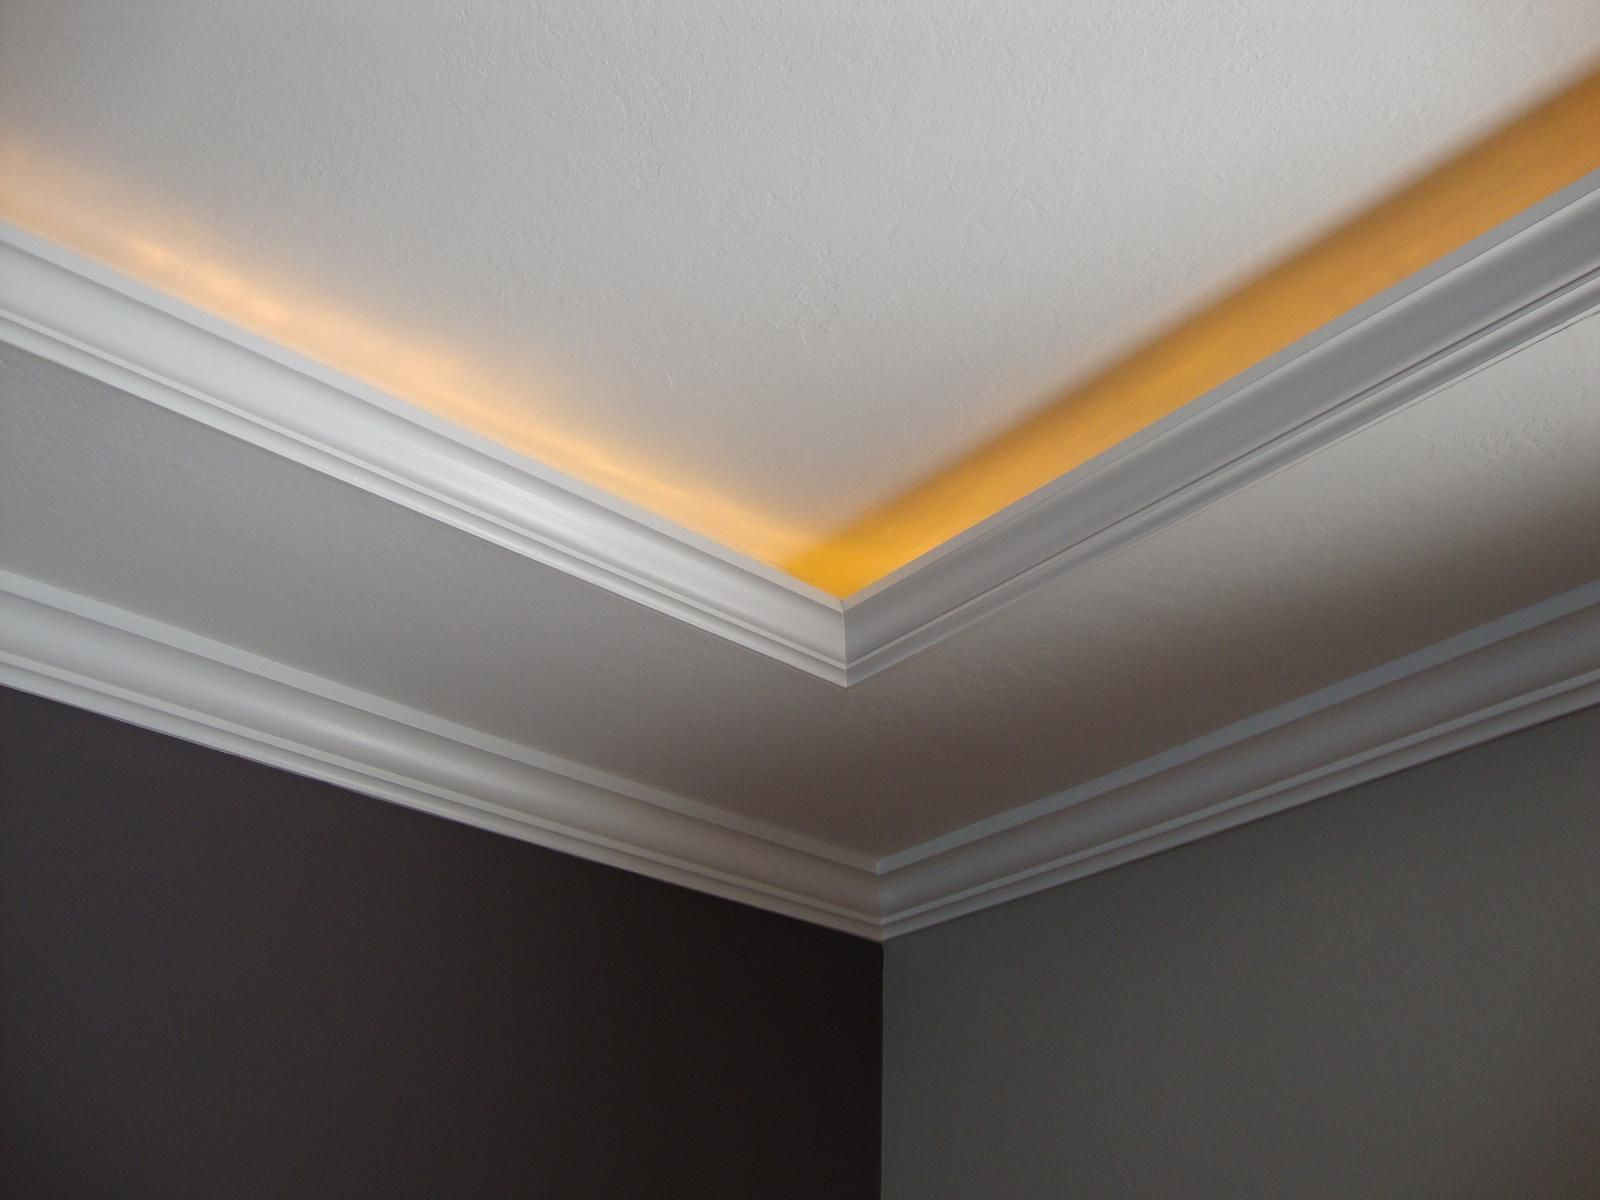 crown molding lighting DIY This is the lighting I want on the